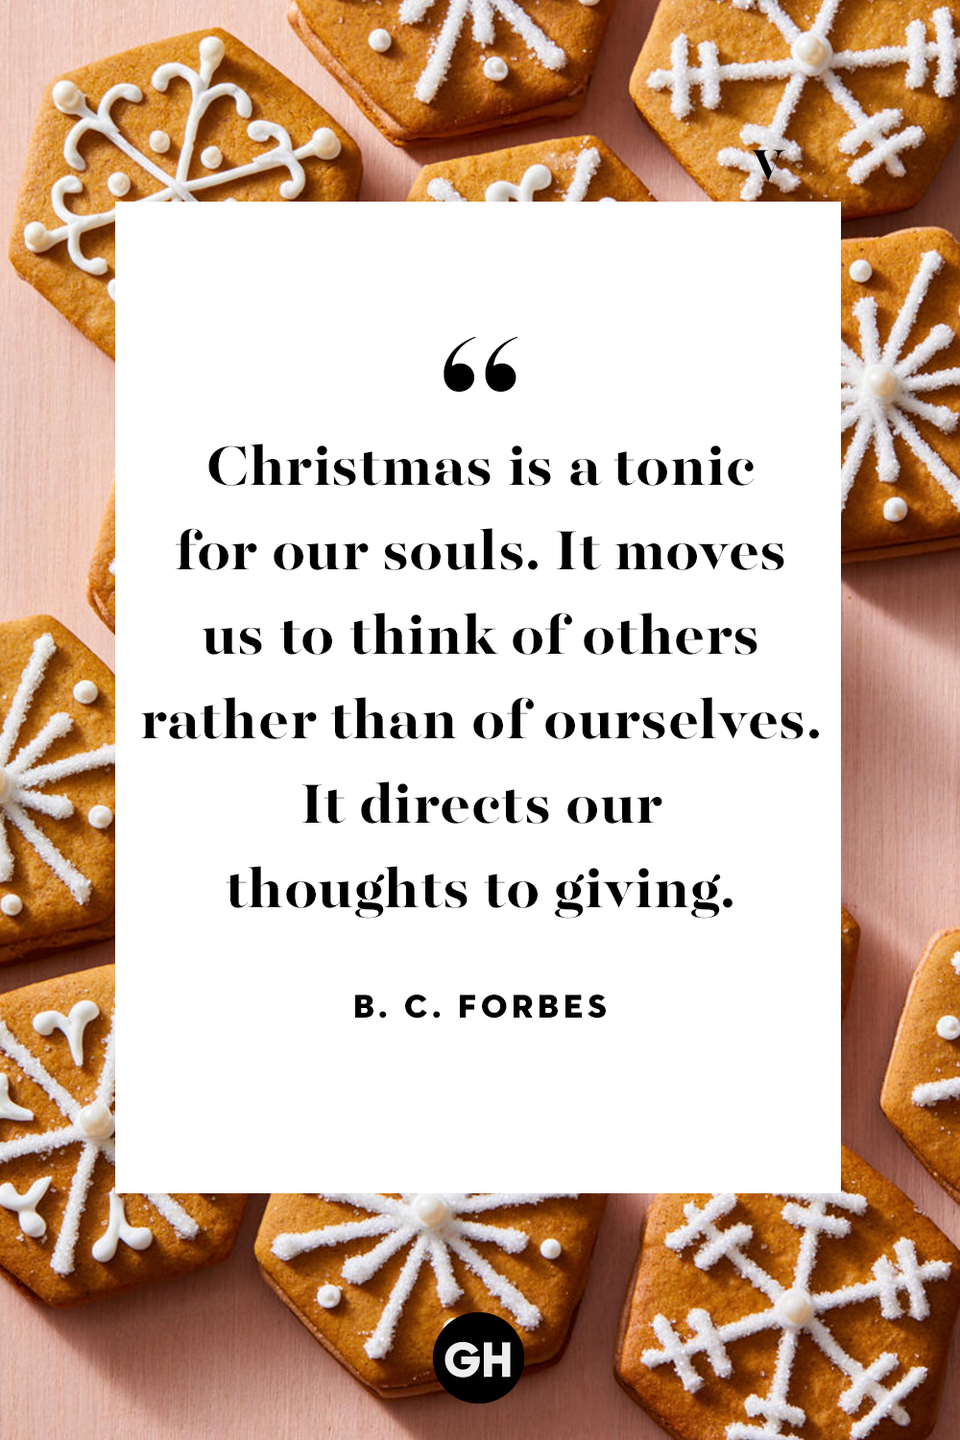 <p>Christmas is a tonic for our souls. It moves us to think of others rather than of ourselves. It directs our thoughts to giving.</p>